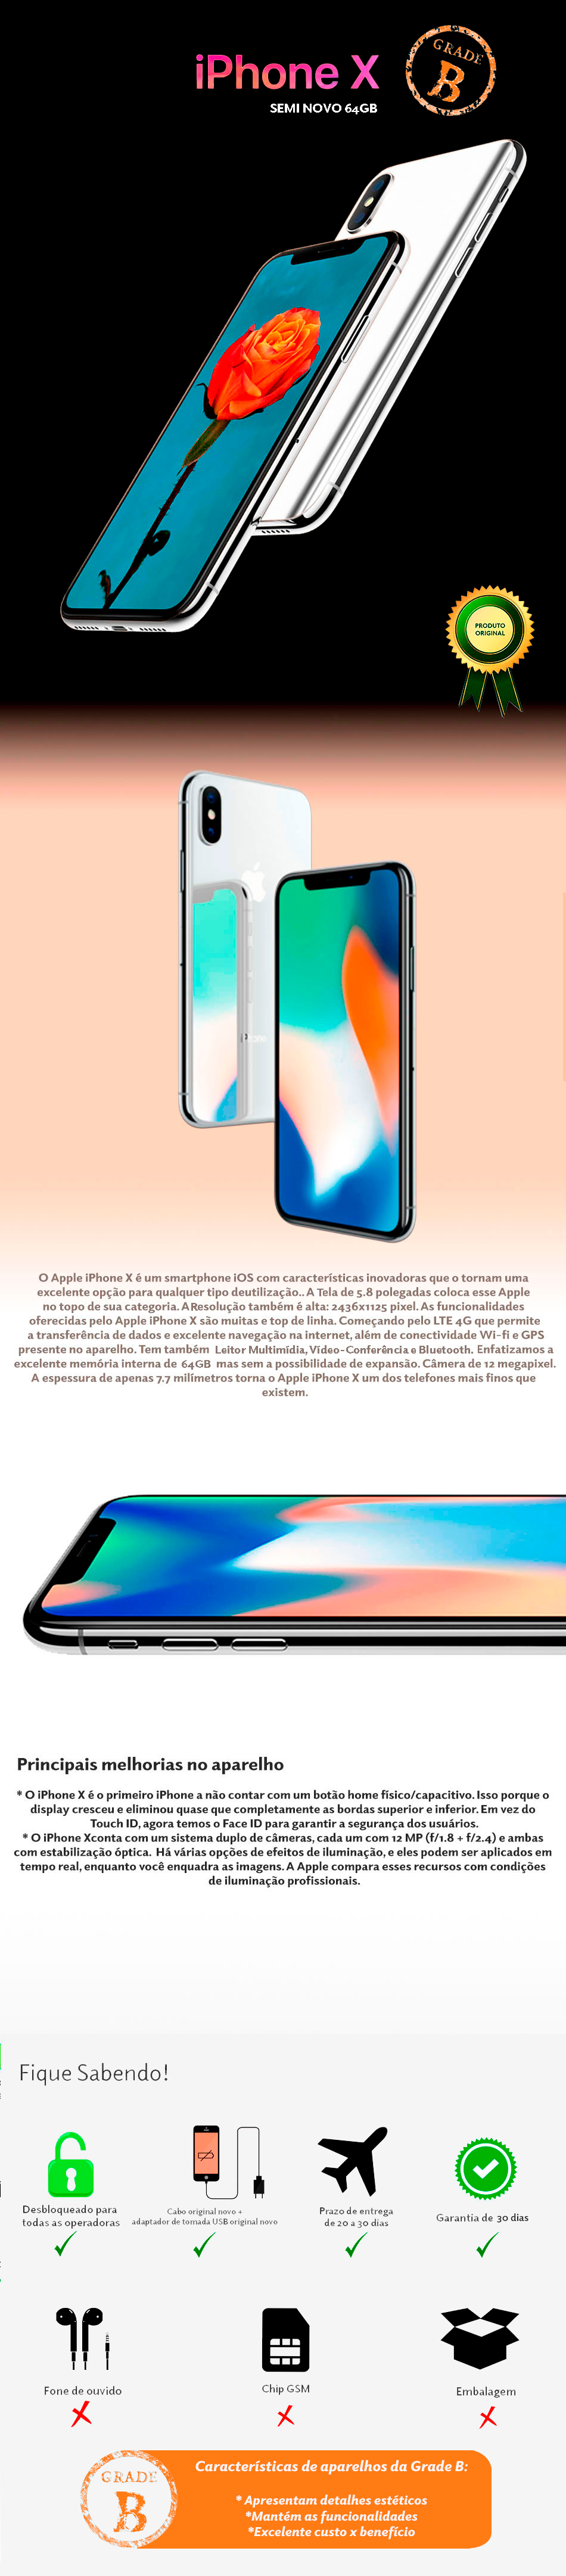 iPhone X 64GB Semi Novo